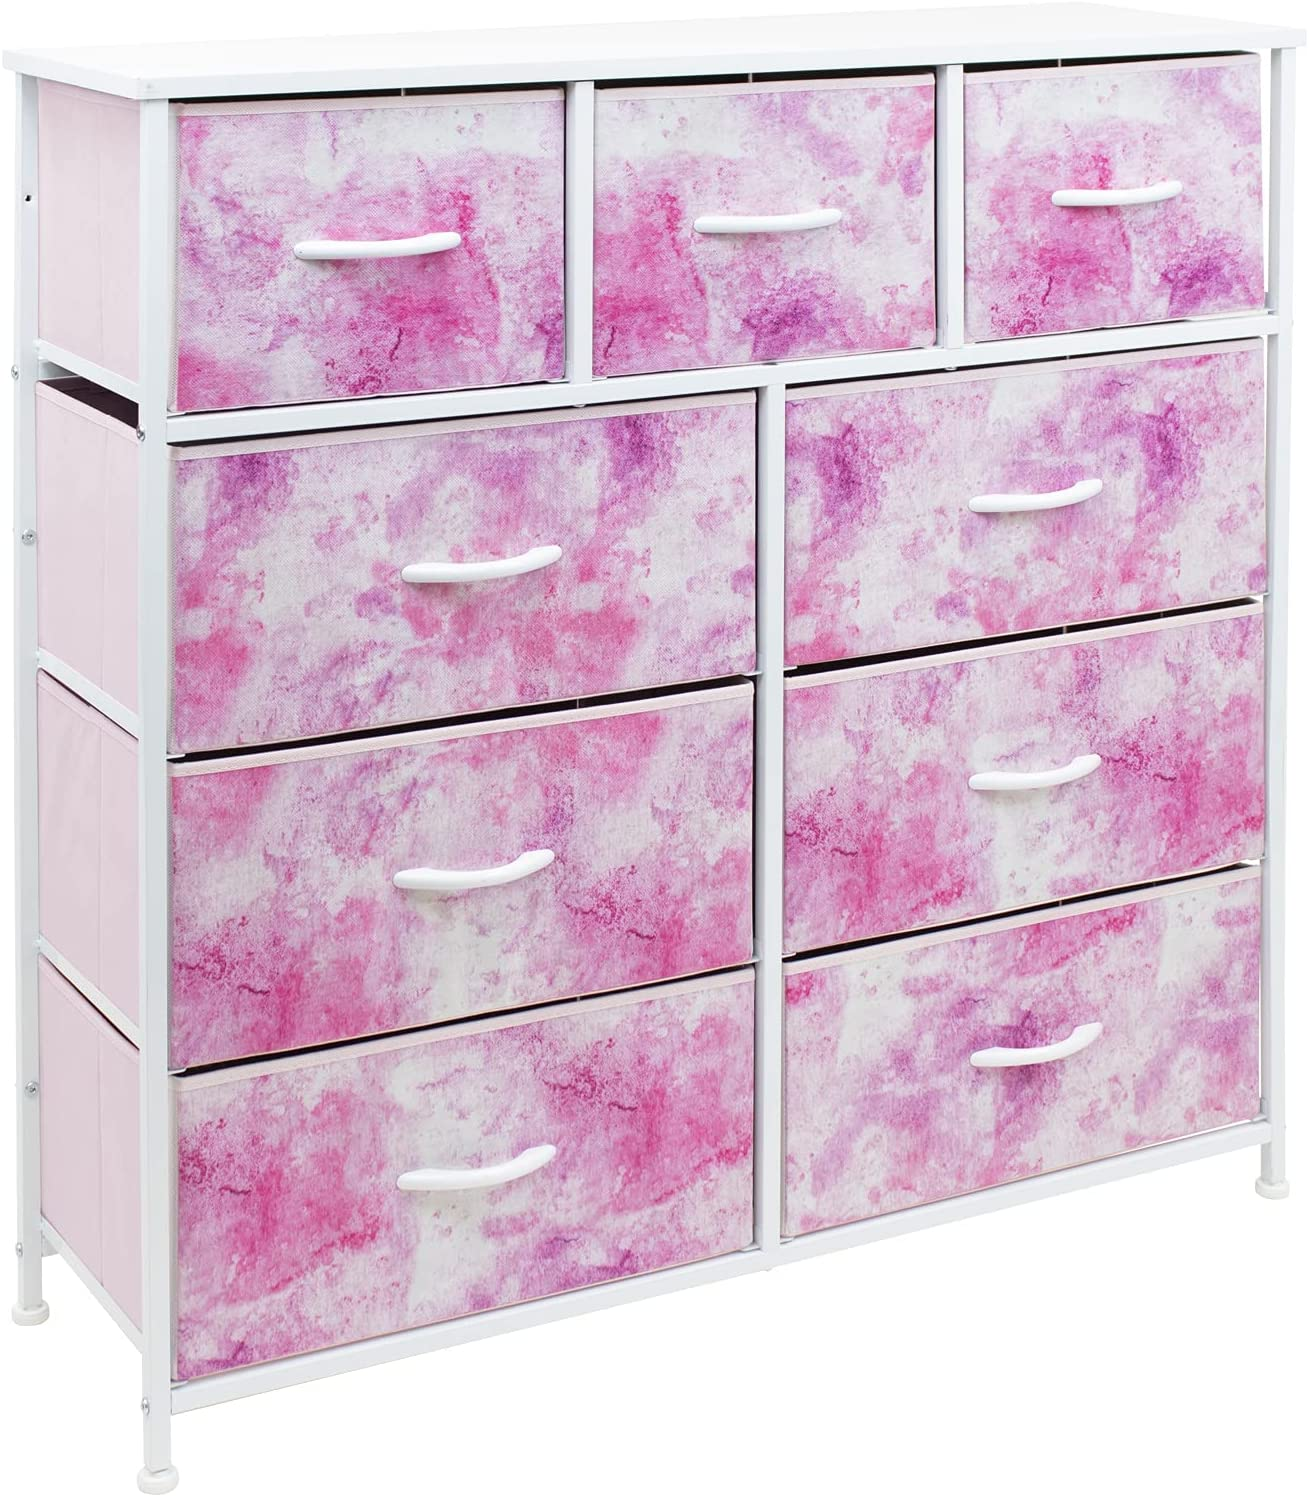 Sorbus Dresser with 9 Drawers - Furniture Storage Chest Tower Unit for Bedroom, Hallway, Closet, Office Organization - Steel Frame, Wood Top, Tie-dye Fabric Bins (9-Drawer, Pink)